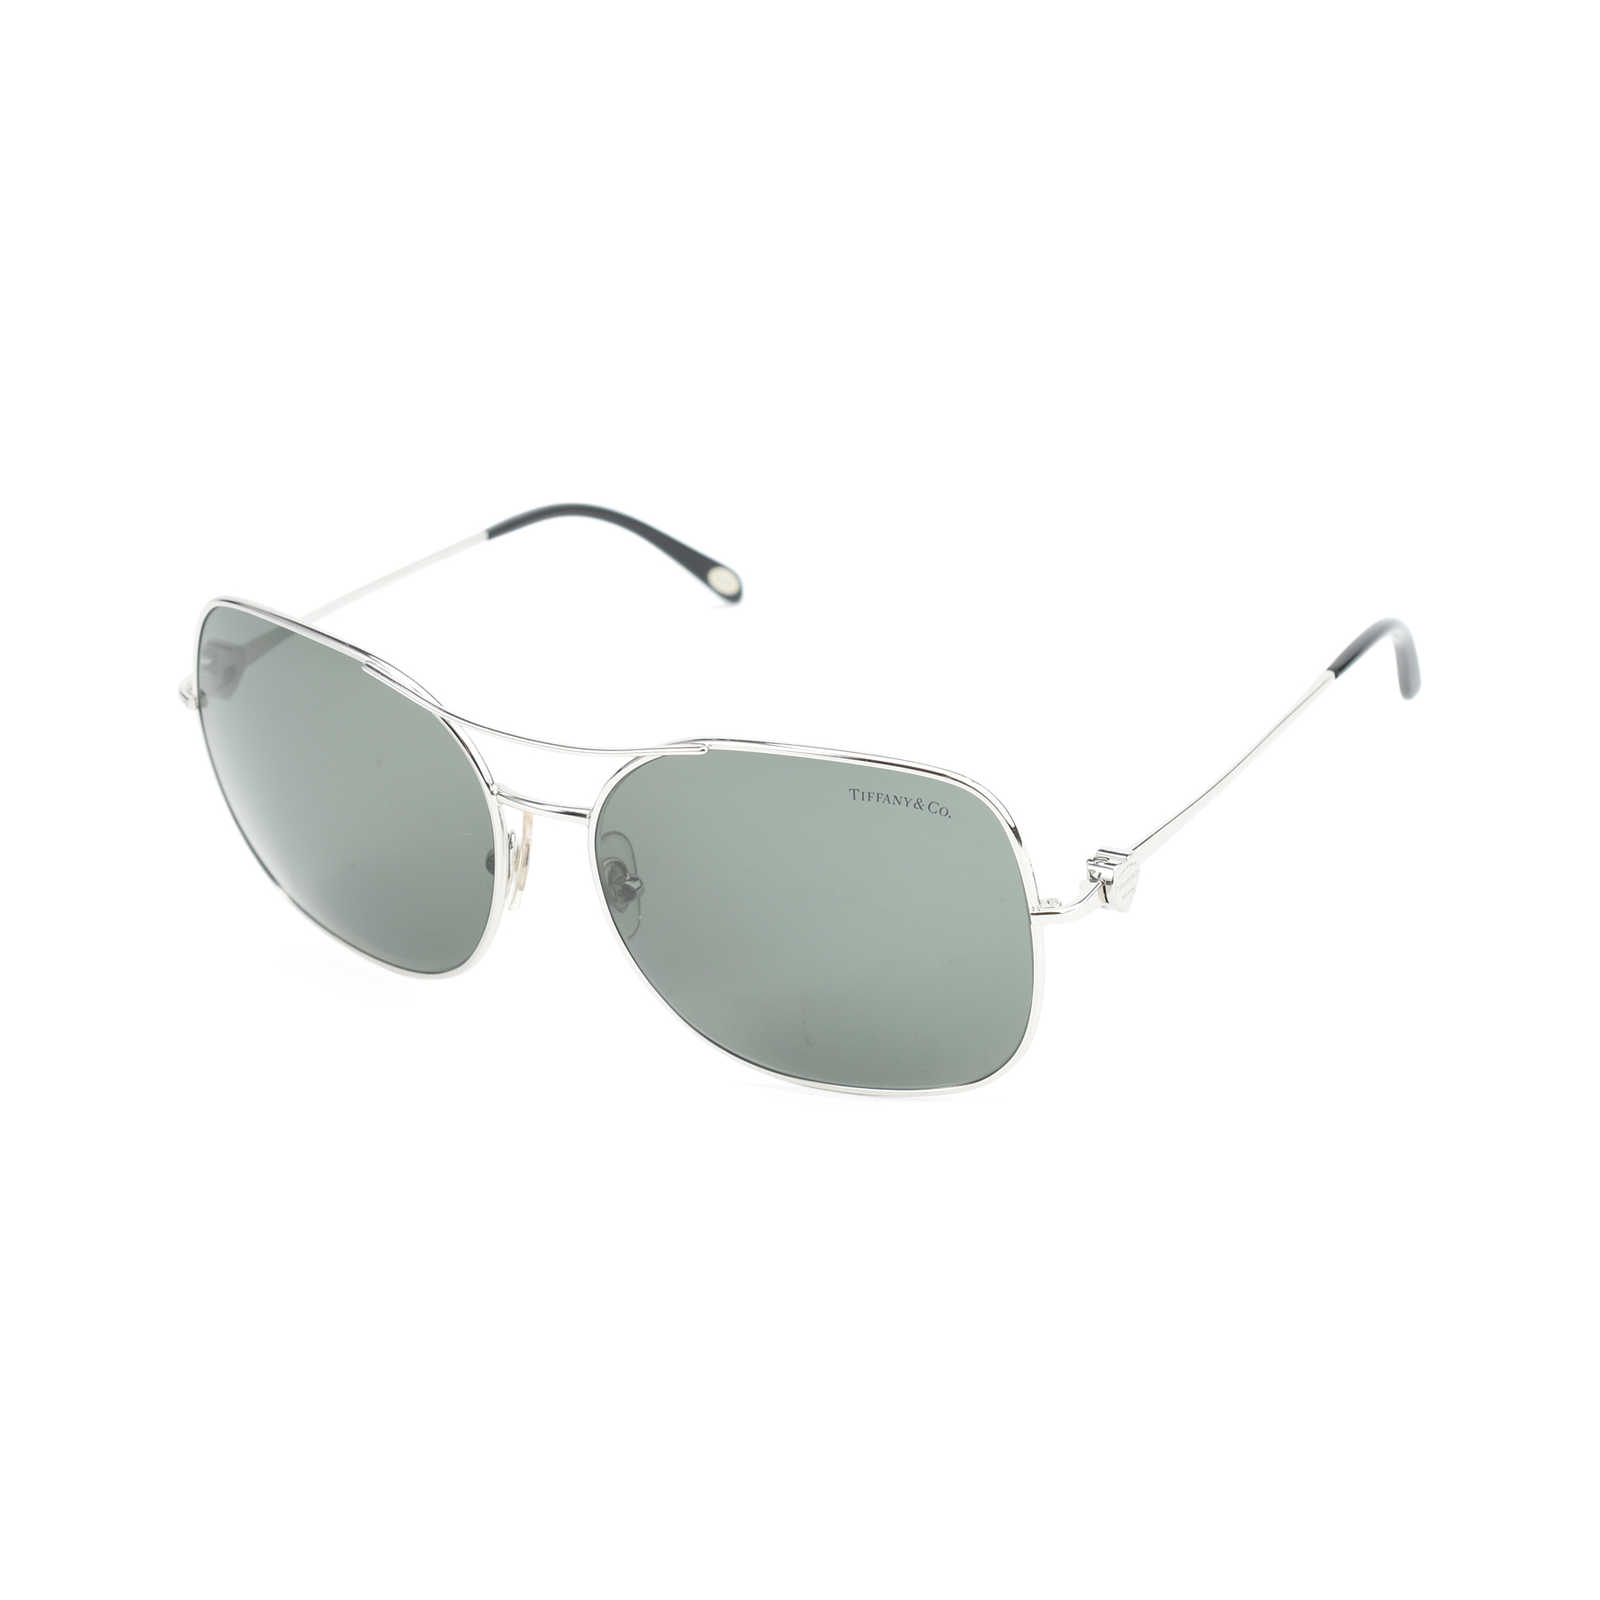 648c645e5b ... Authentic Second Hand Tiffany   Co Aviator Bow Sunglasses  (PSS-413-00016) ...